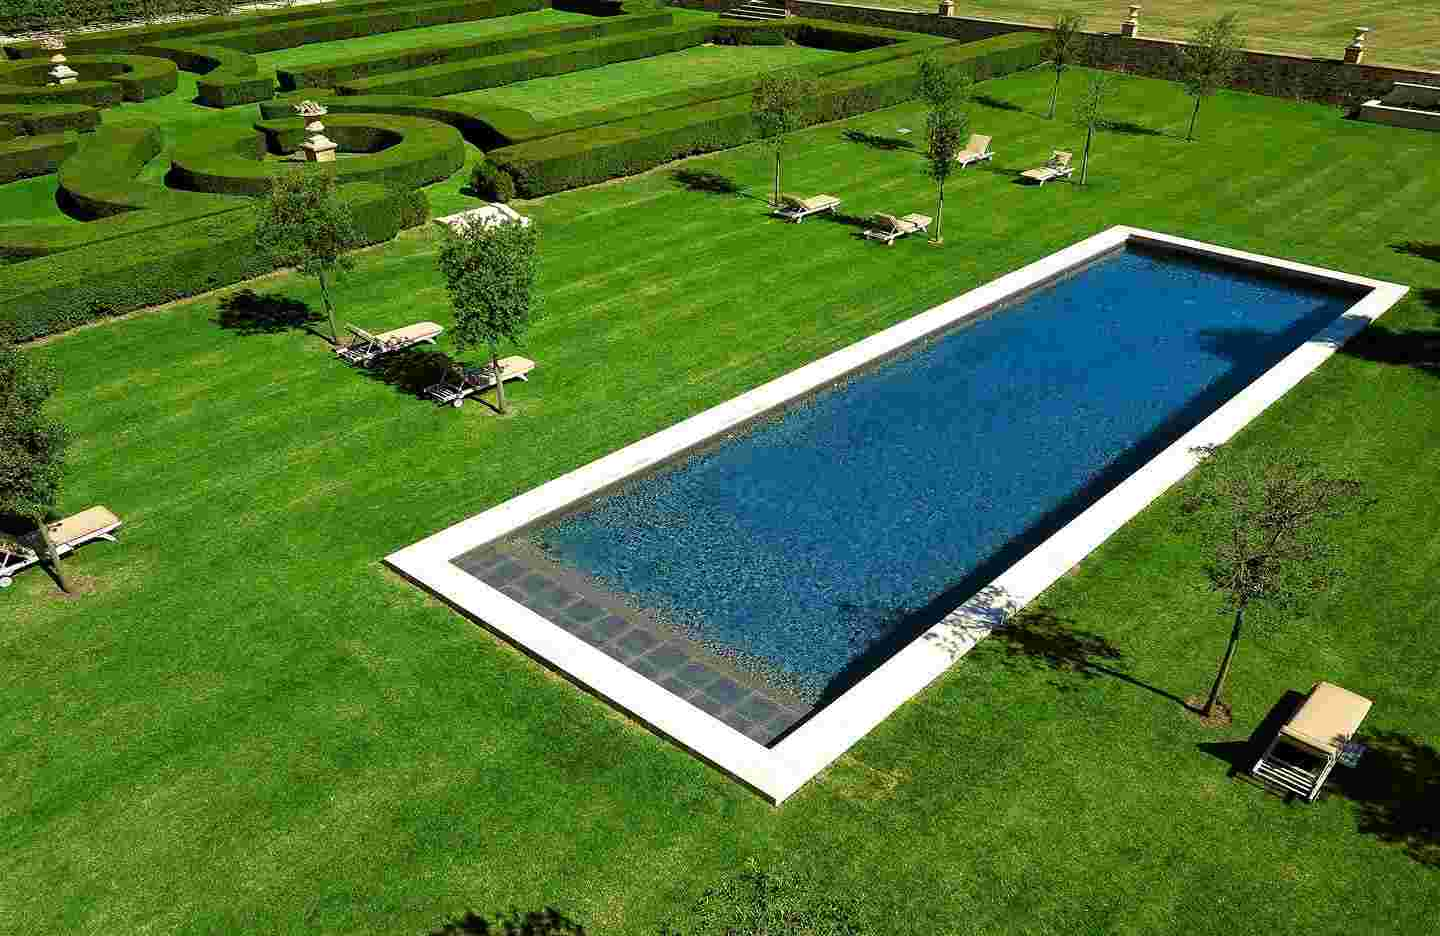 Concrete ground pools by Diffazur